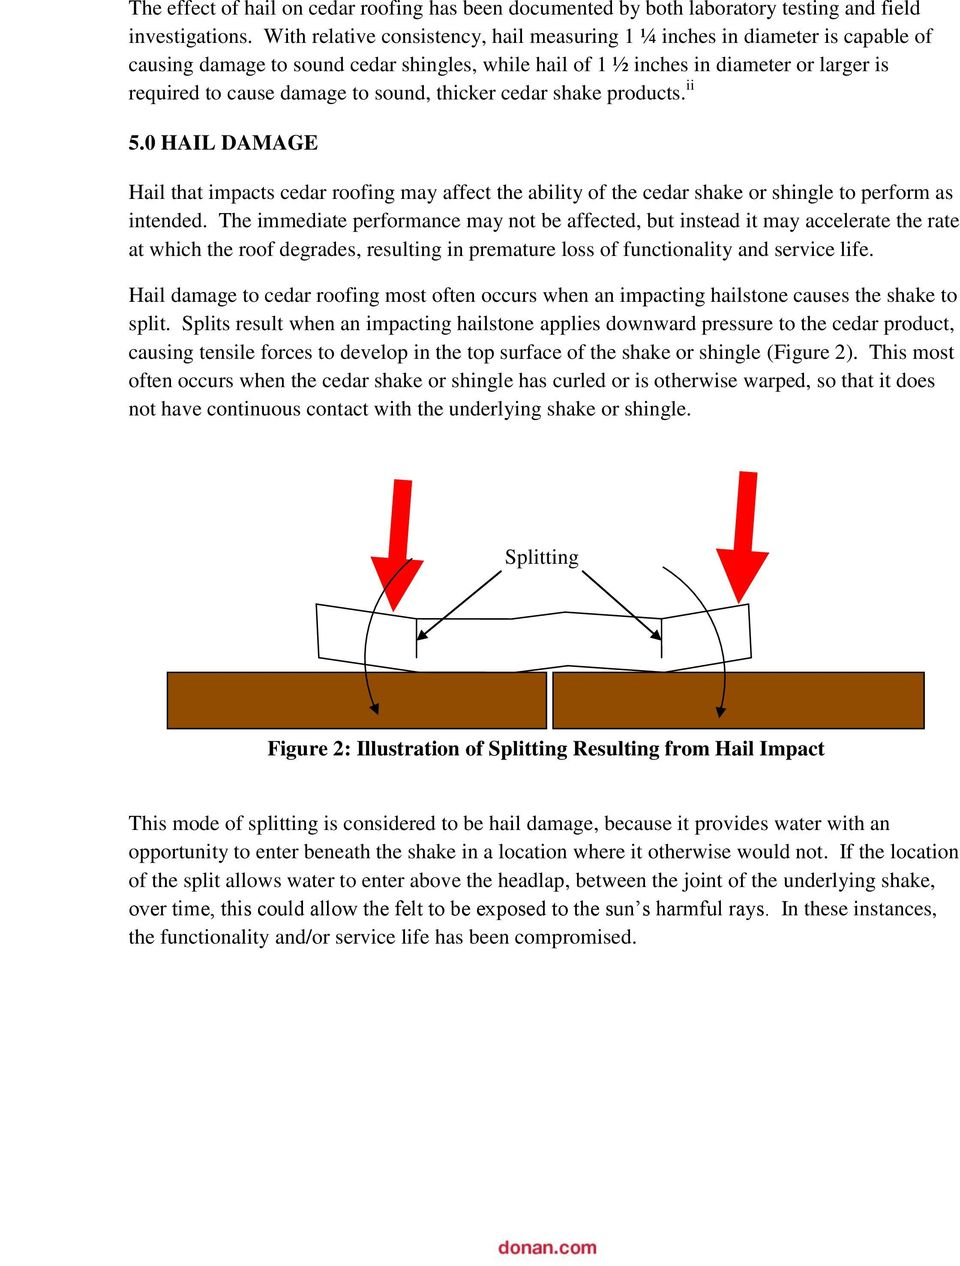 Functional Vs Non Functional Hail Damage To Cedar Roofing